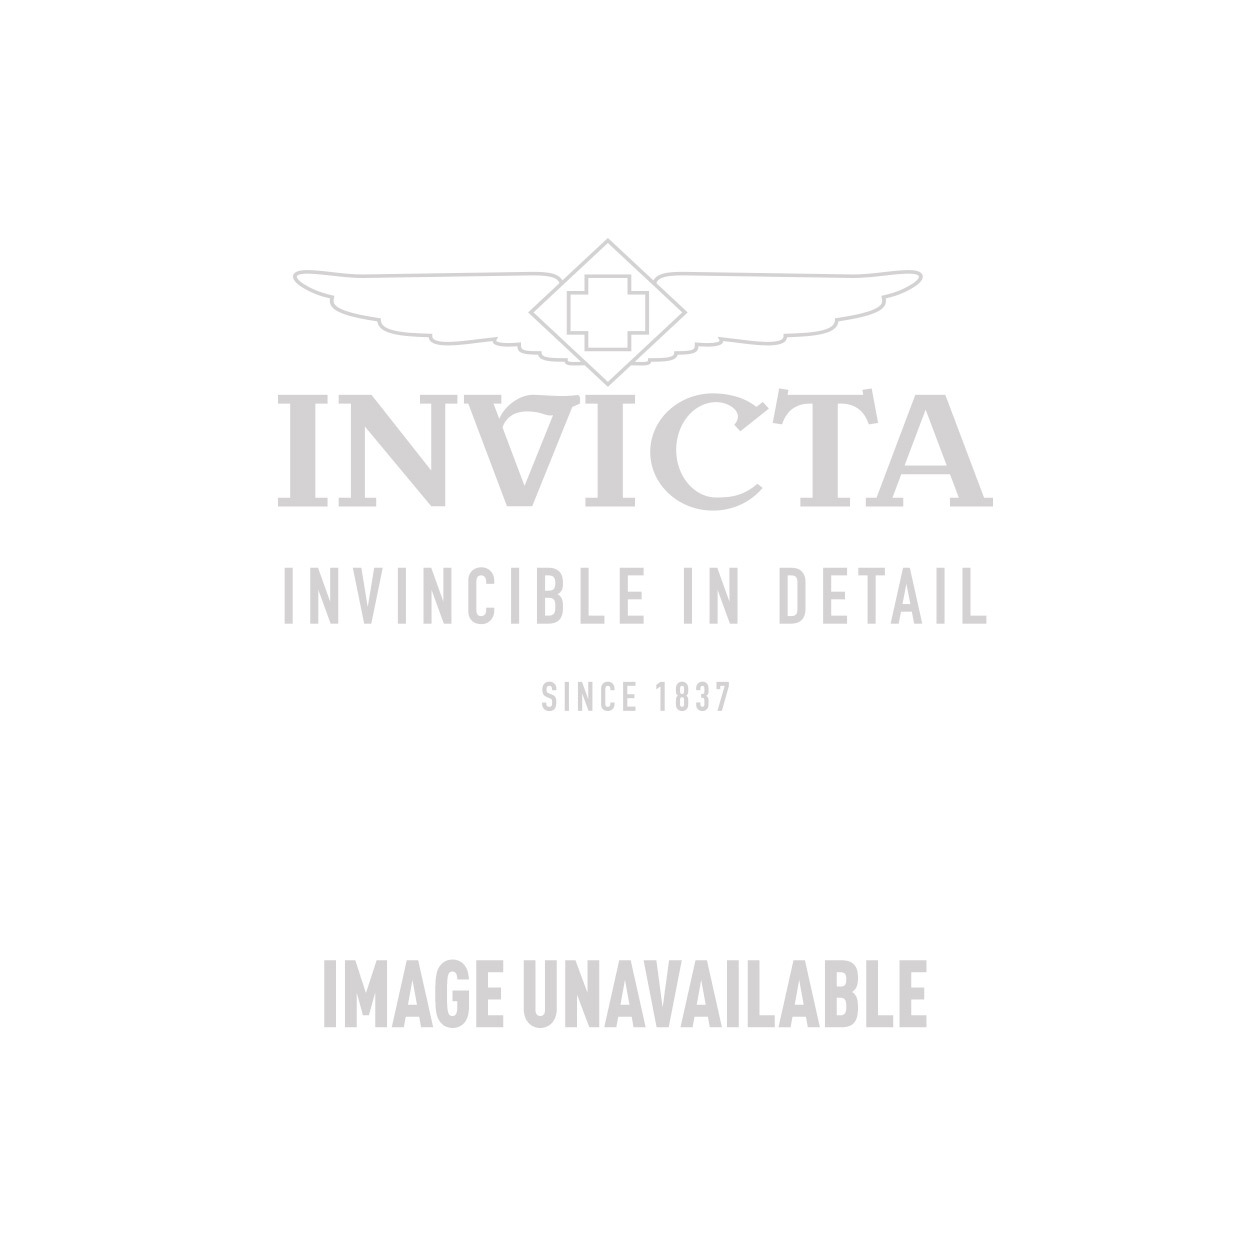 Invicta Angel Swiss Movement Quartz Watch - Stainless Steel case Stainless Steel band - Model 90254